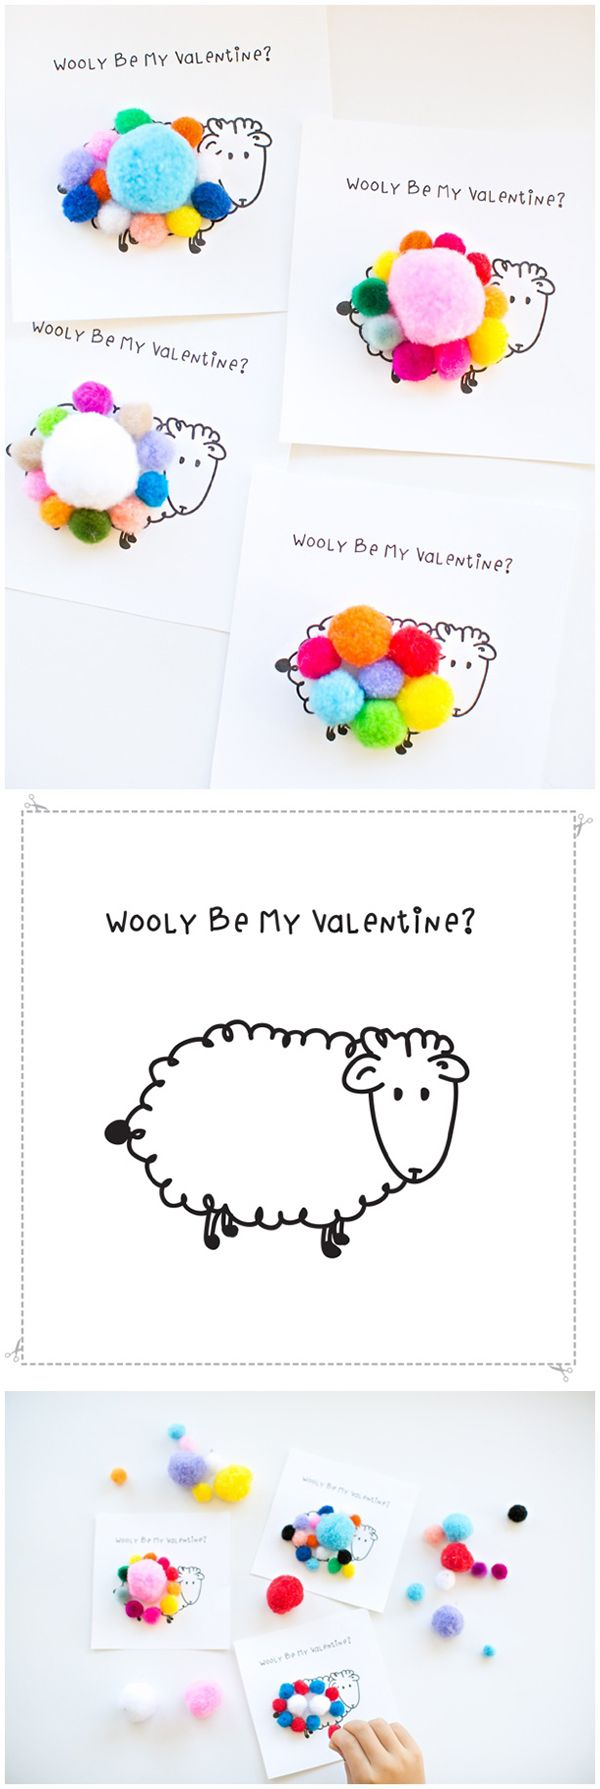 "Wooly Be My Valentine Free Printable - print out these adorable sheep cards and let kids add pom pom's on top for the ""sheep's wool."" Such a cute, non-candy Valentine idea!"